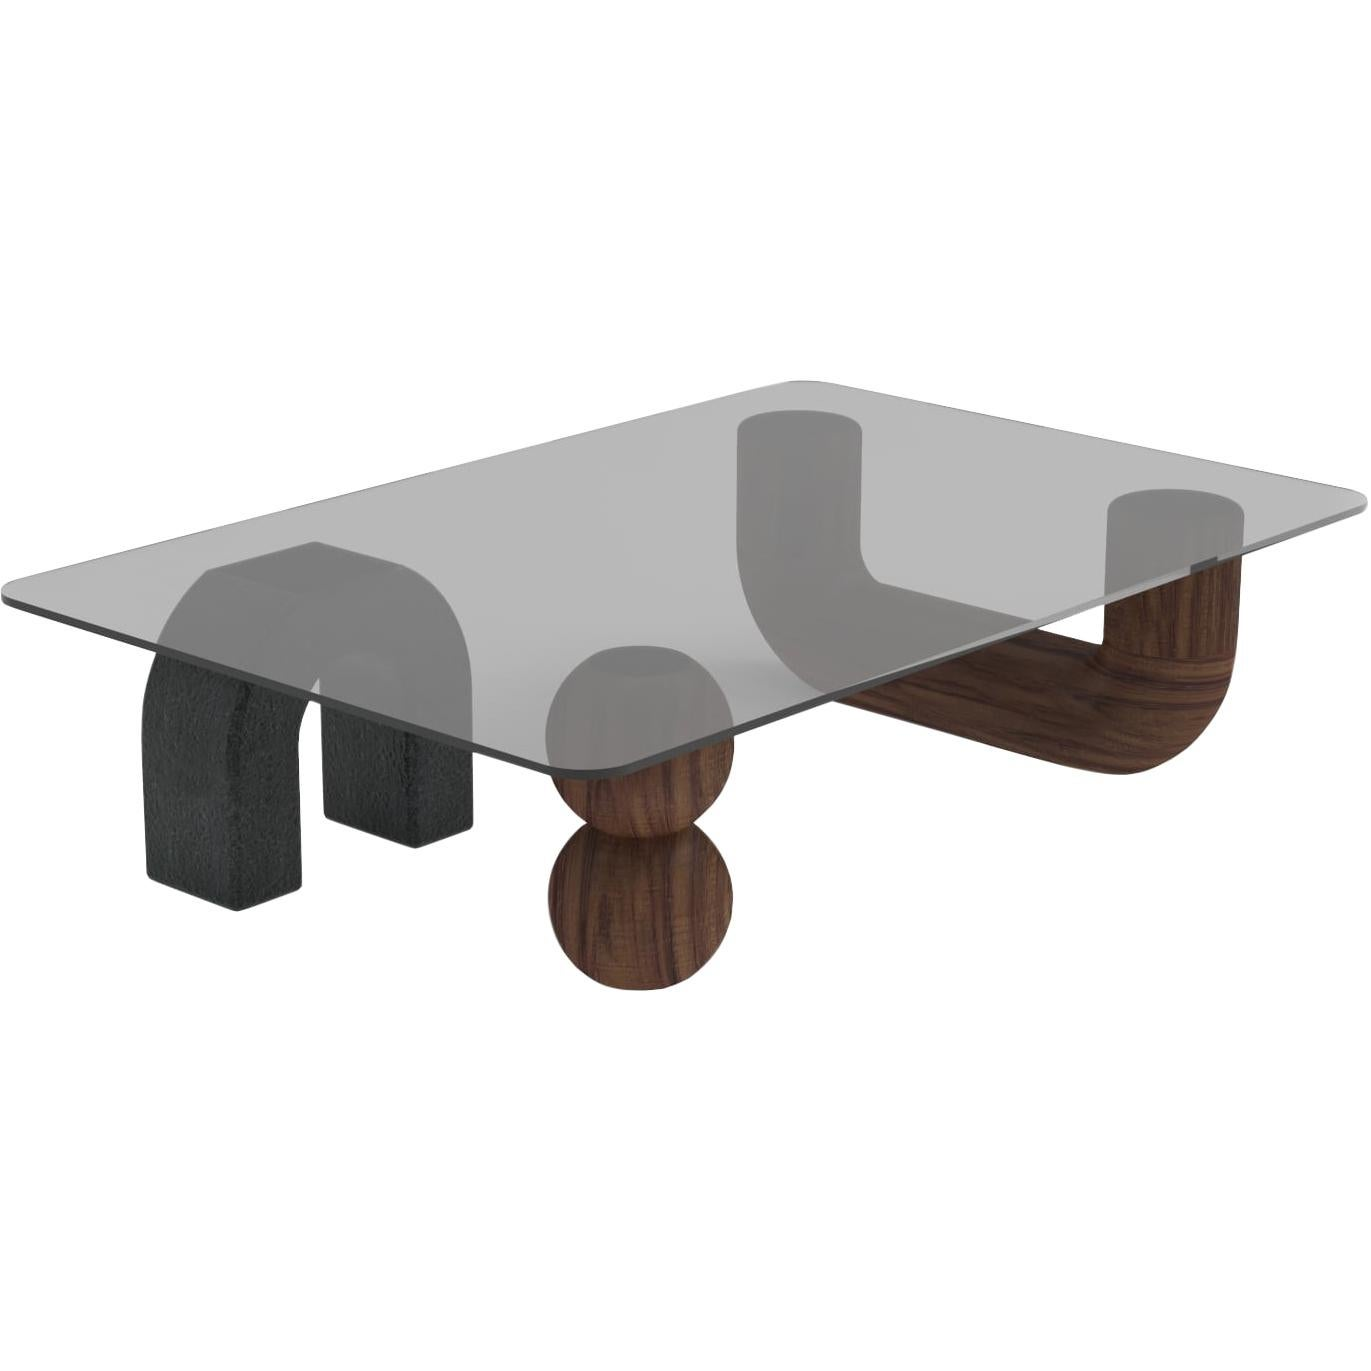 Rosedal Coffee Table by Comité de Proyectos